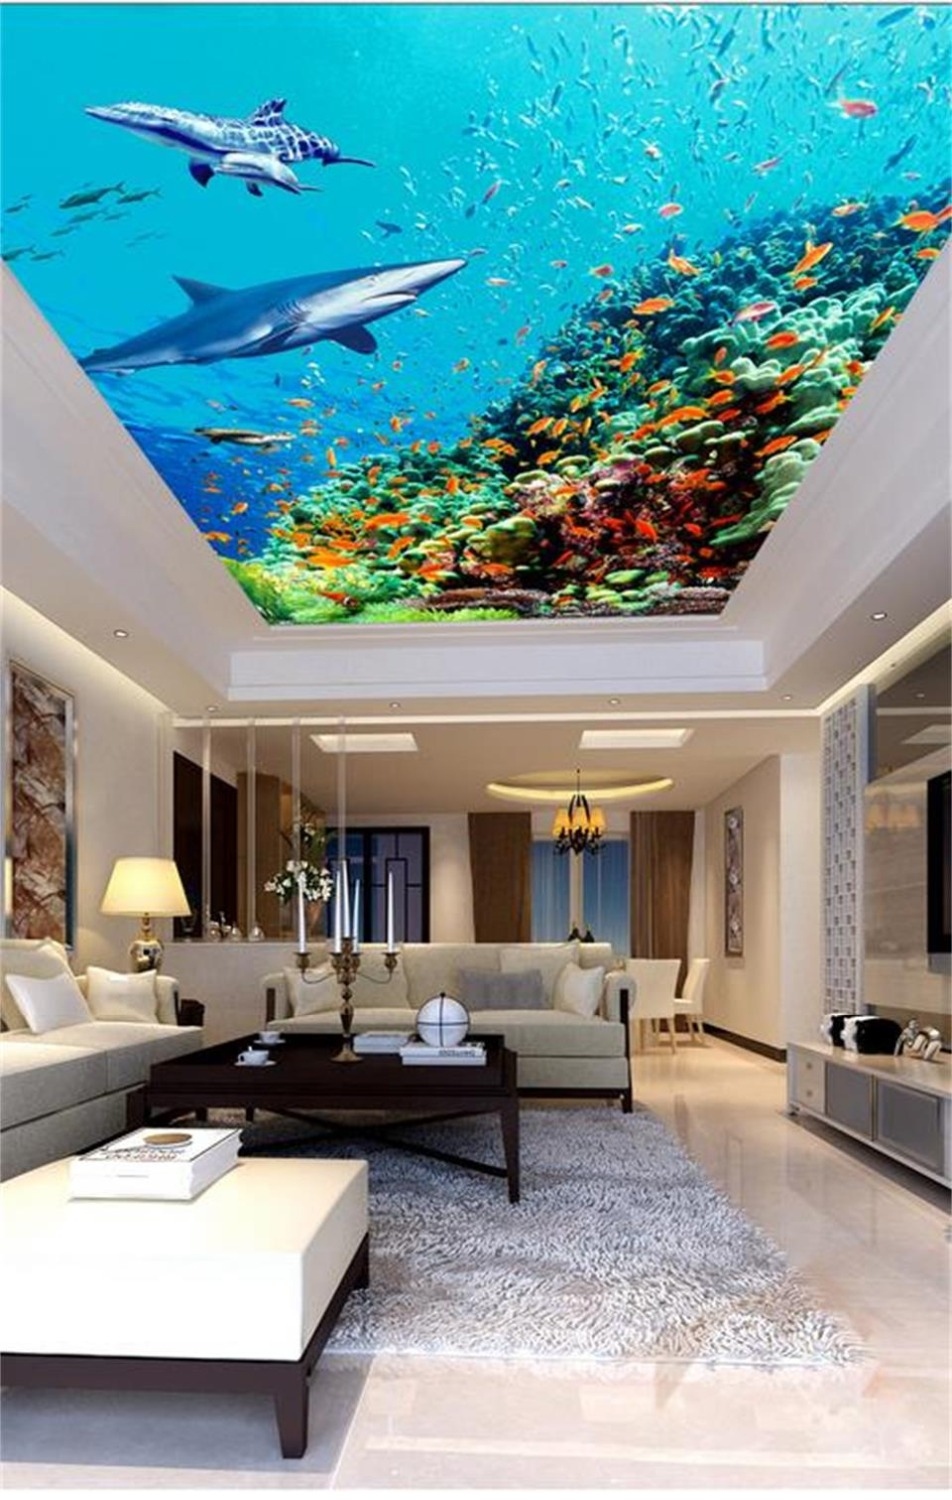 photo wallpaper custom size ceiling living room mural underwater world 3d painting background wallpaper ceiling suspended mural